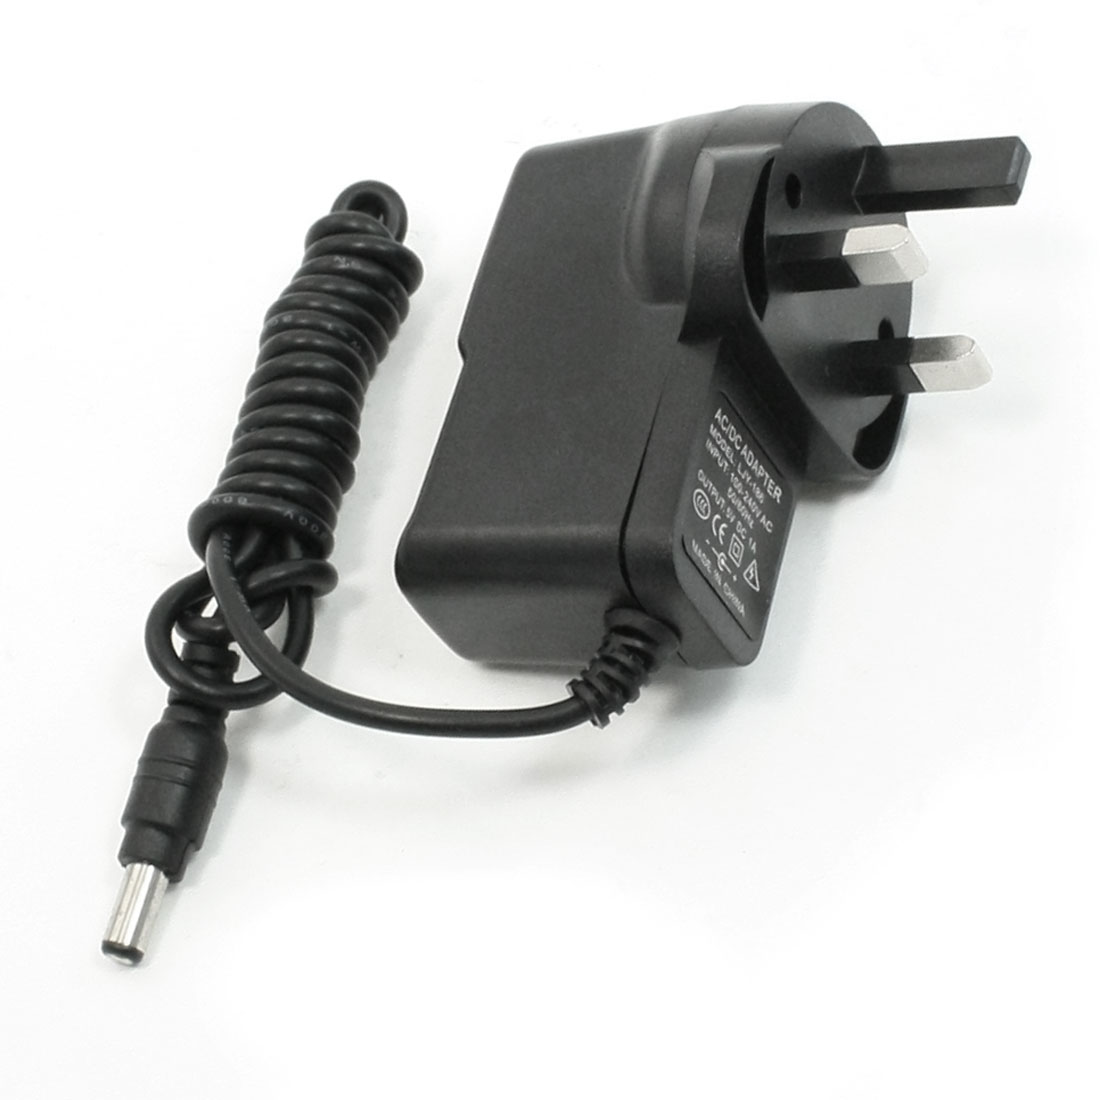 3Pin UK Plug AC 100/240V 50/60Hz to DC 5V 1A Wall Power Adapter